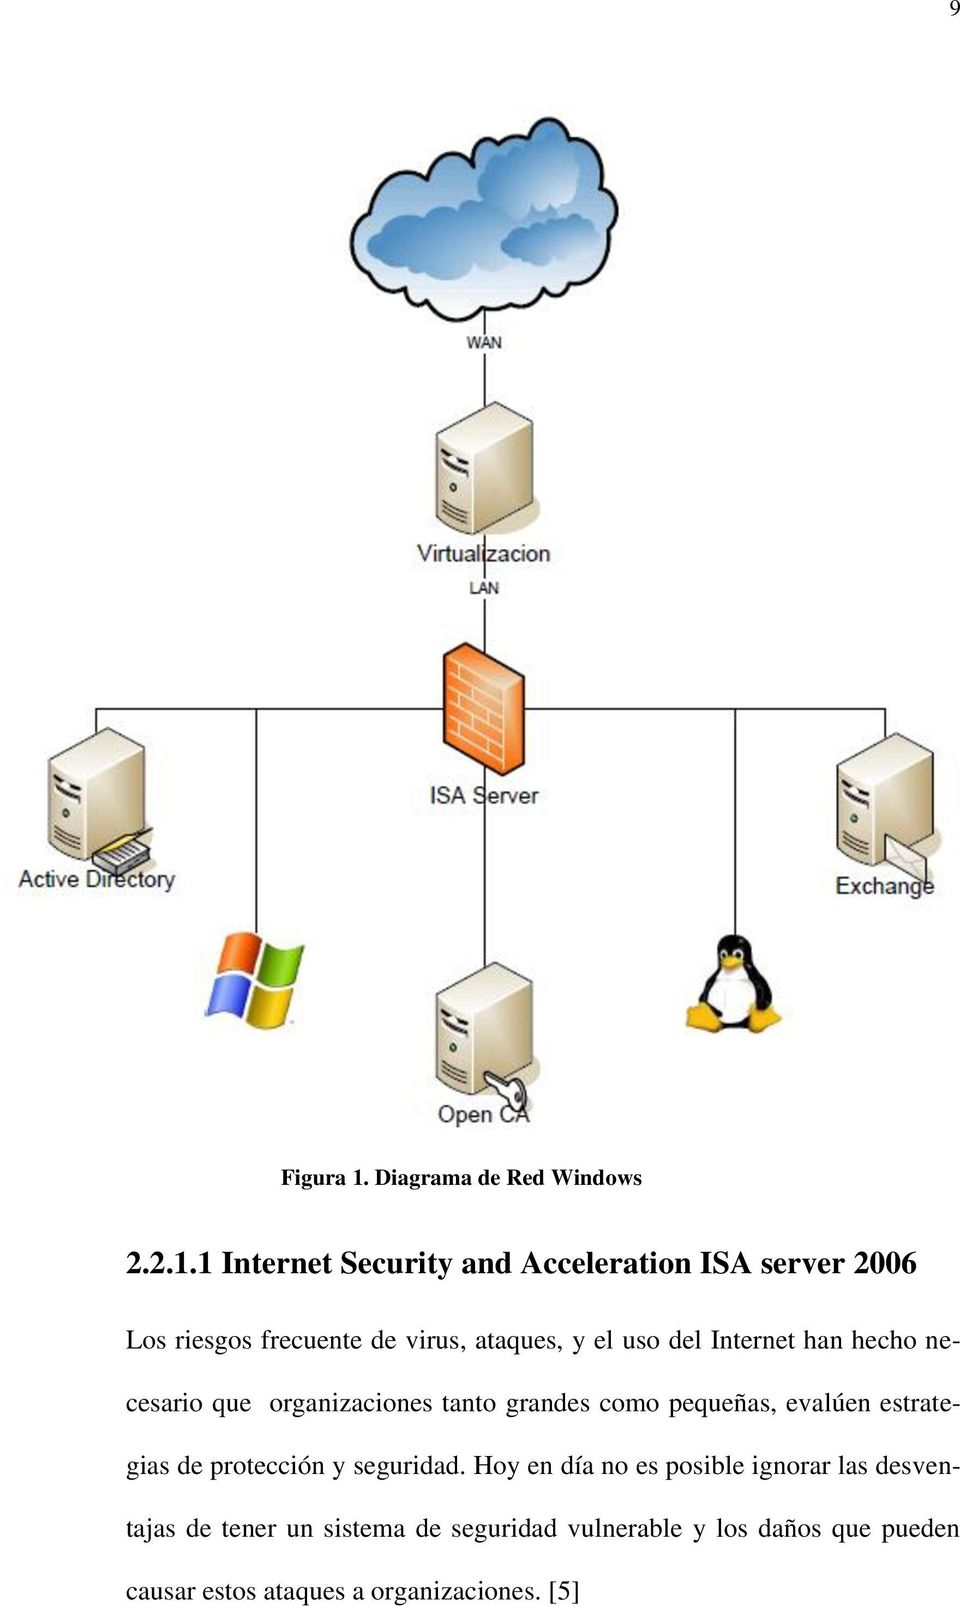 1 Internet Security and Acceleration ISA server 2006 Los riesgos frecuente de virus, ataques, y el uso del